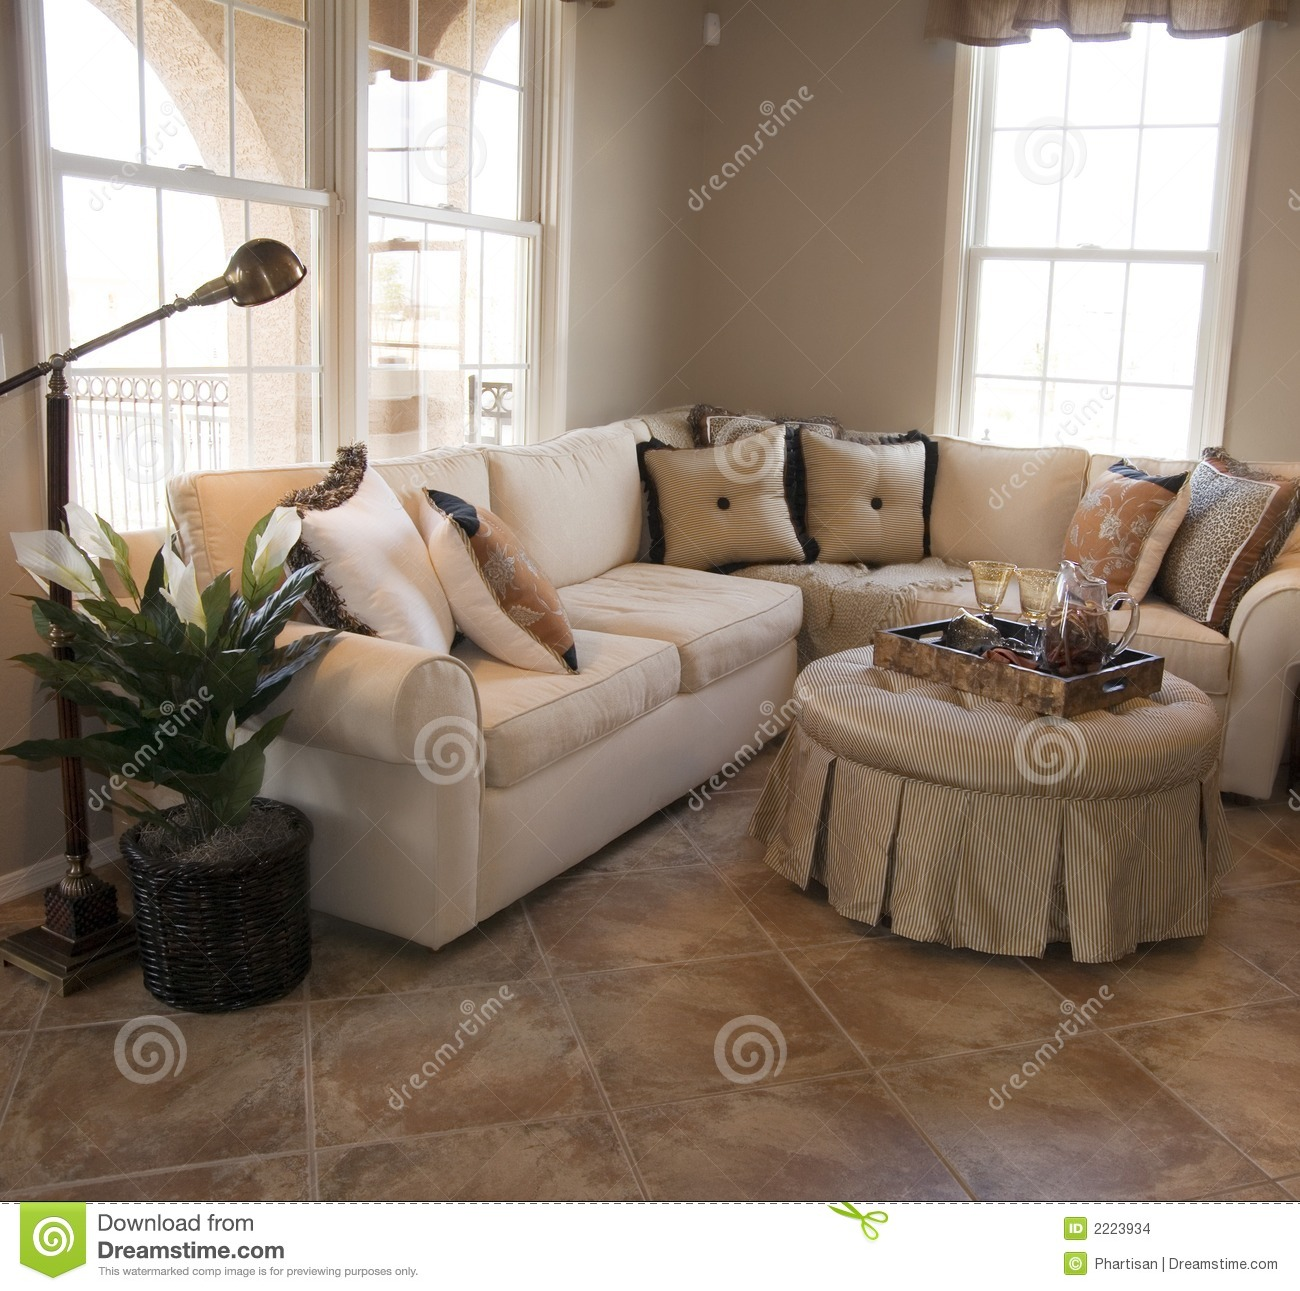 Model home interior design stock images image 2223934 for Interior design model homes pictures